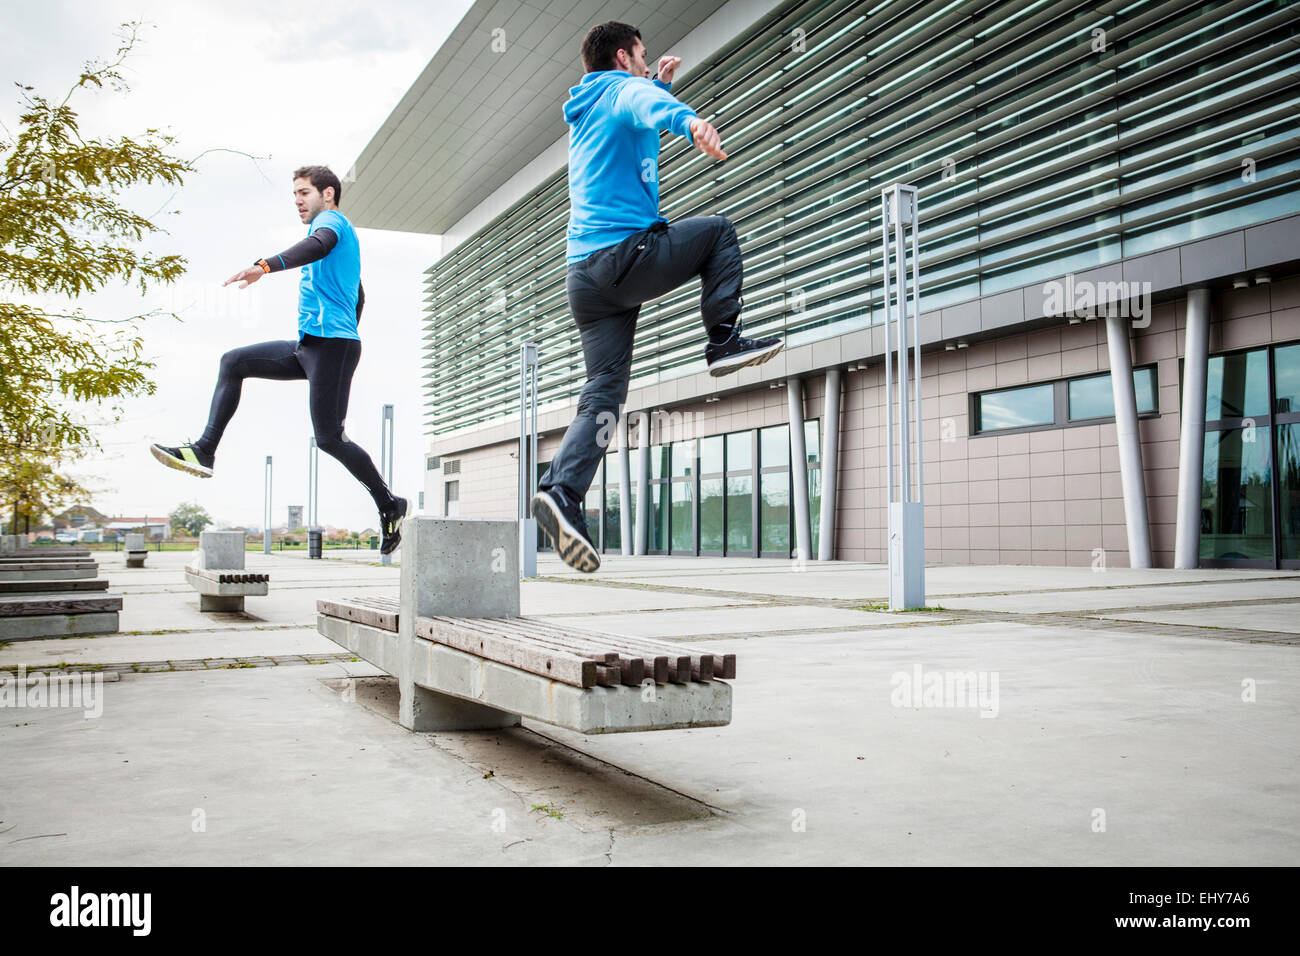 Two male runners doing sports training  together in city - Stock Image